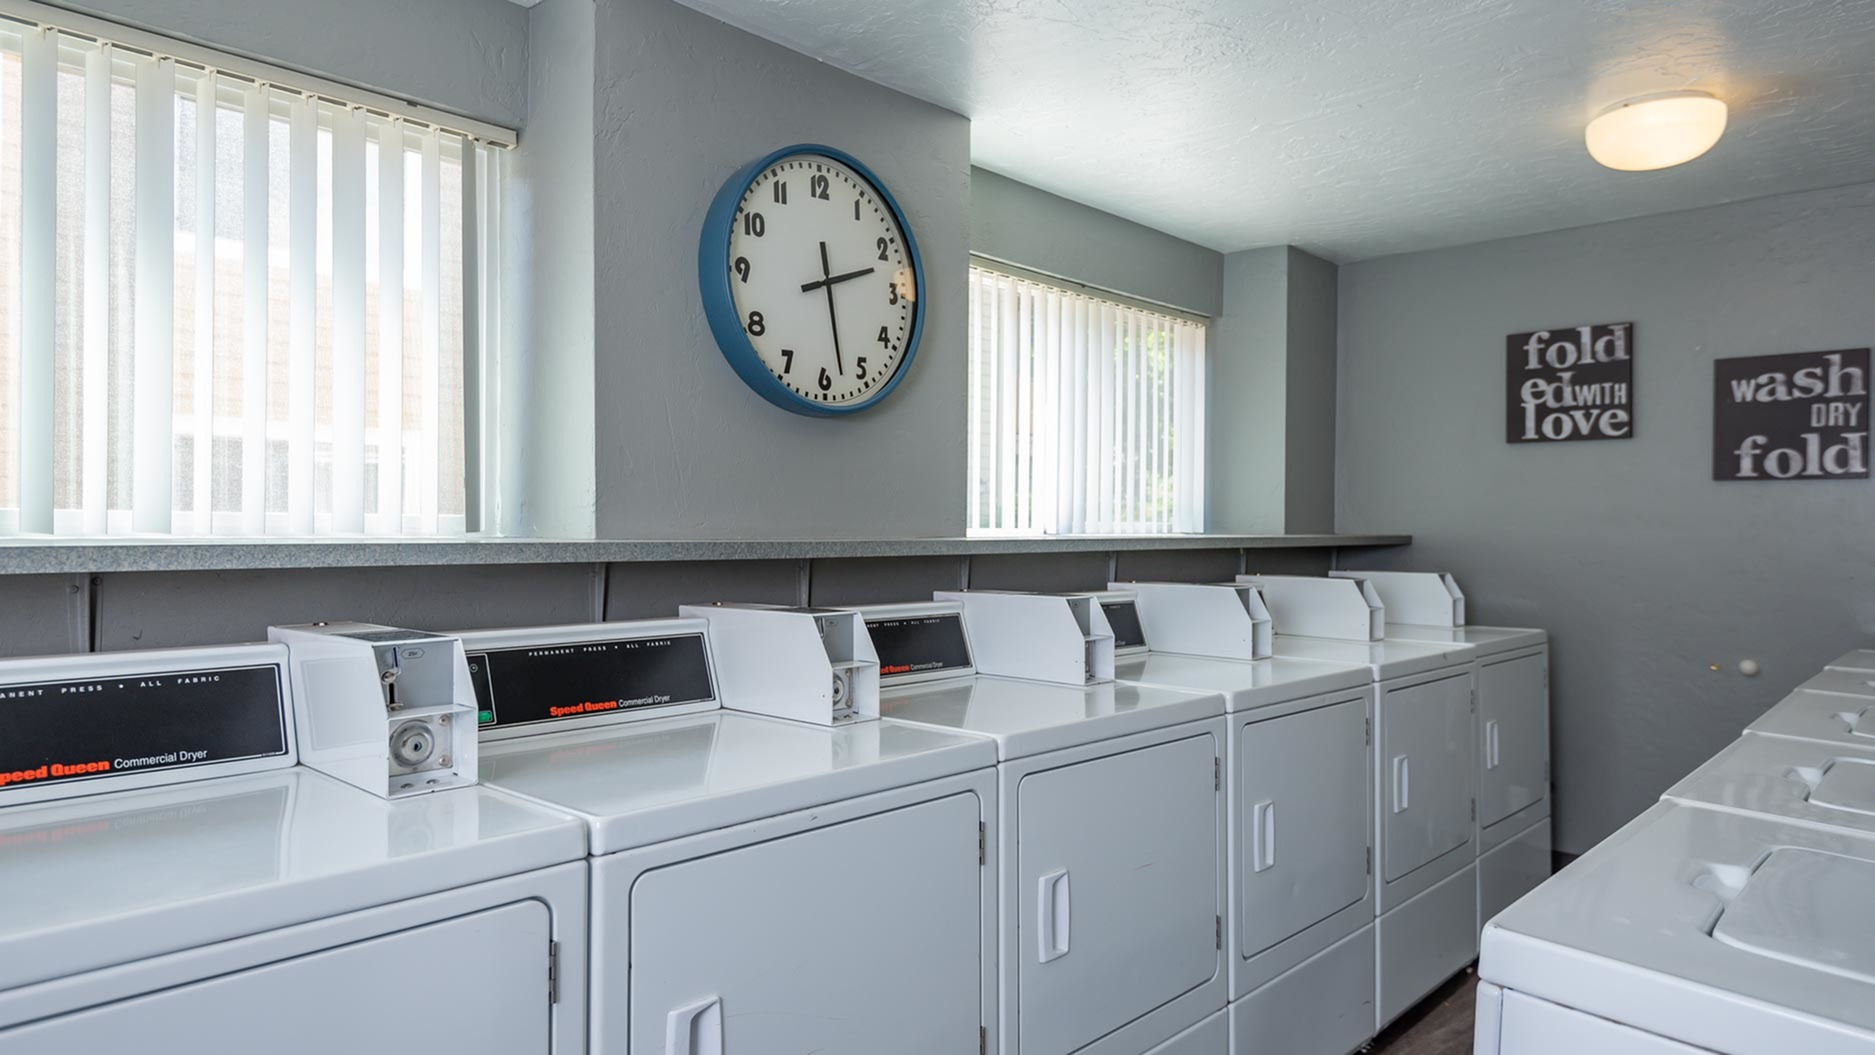 Image of Laundry Facilities for Broadway Center